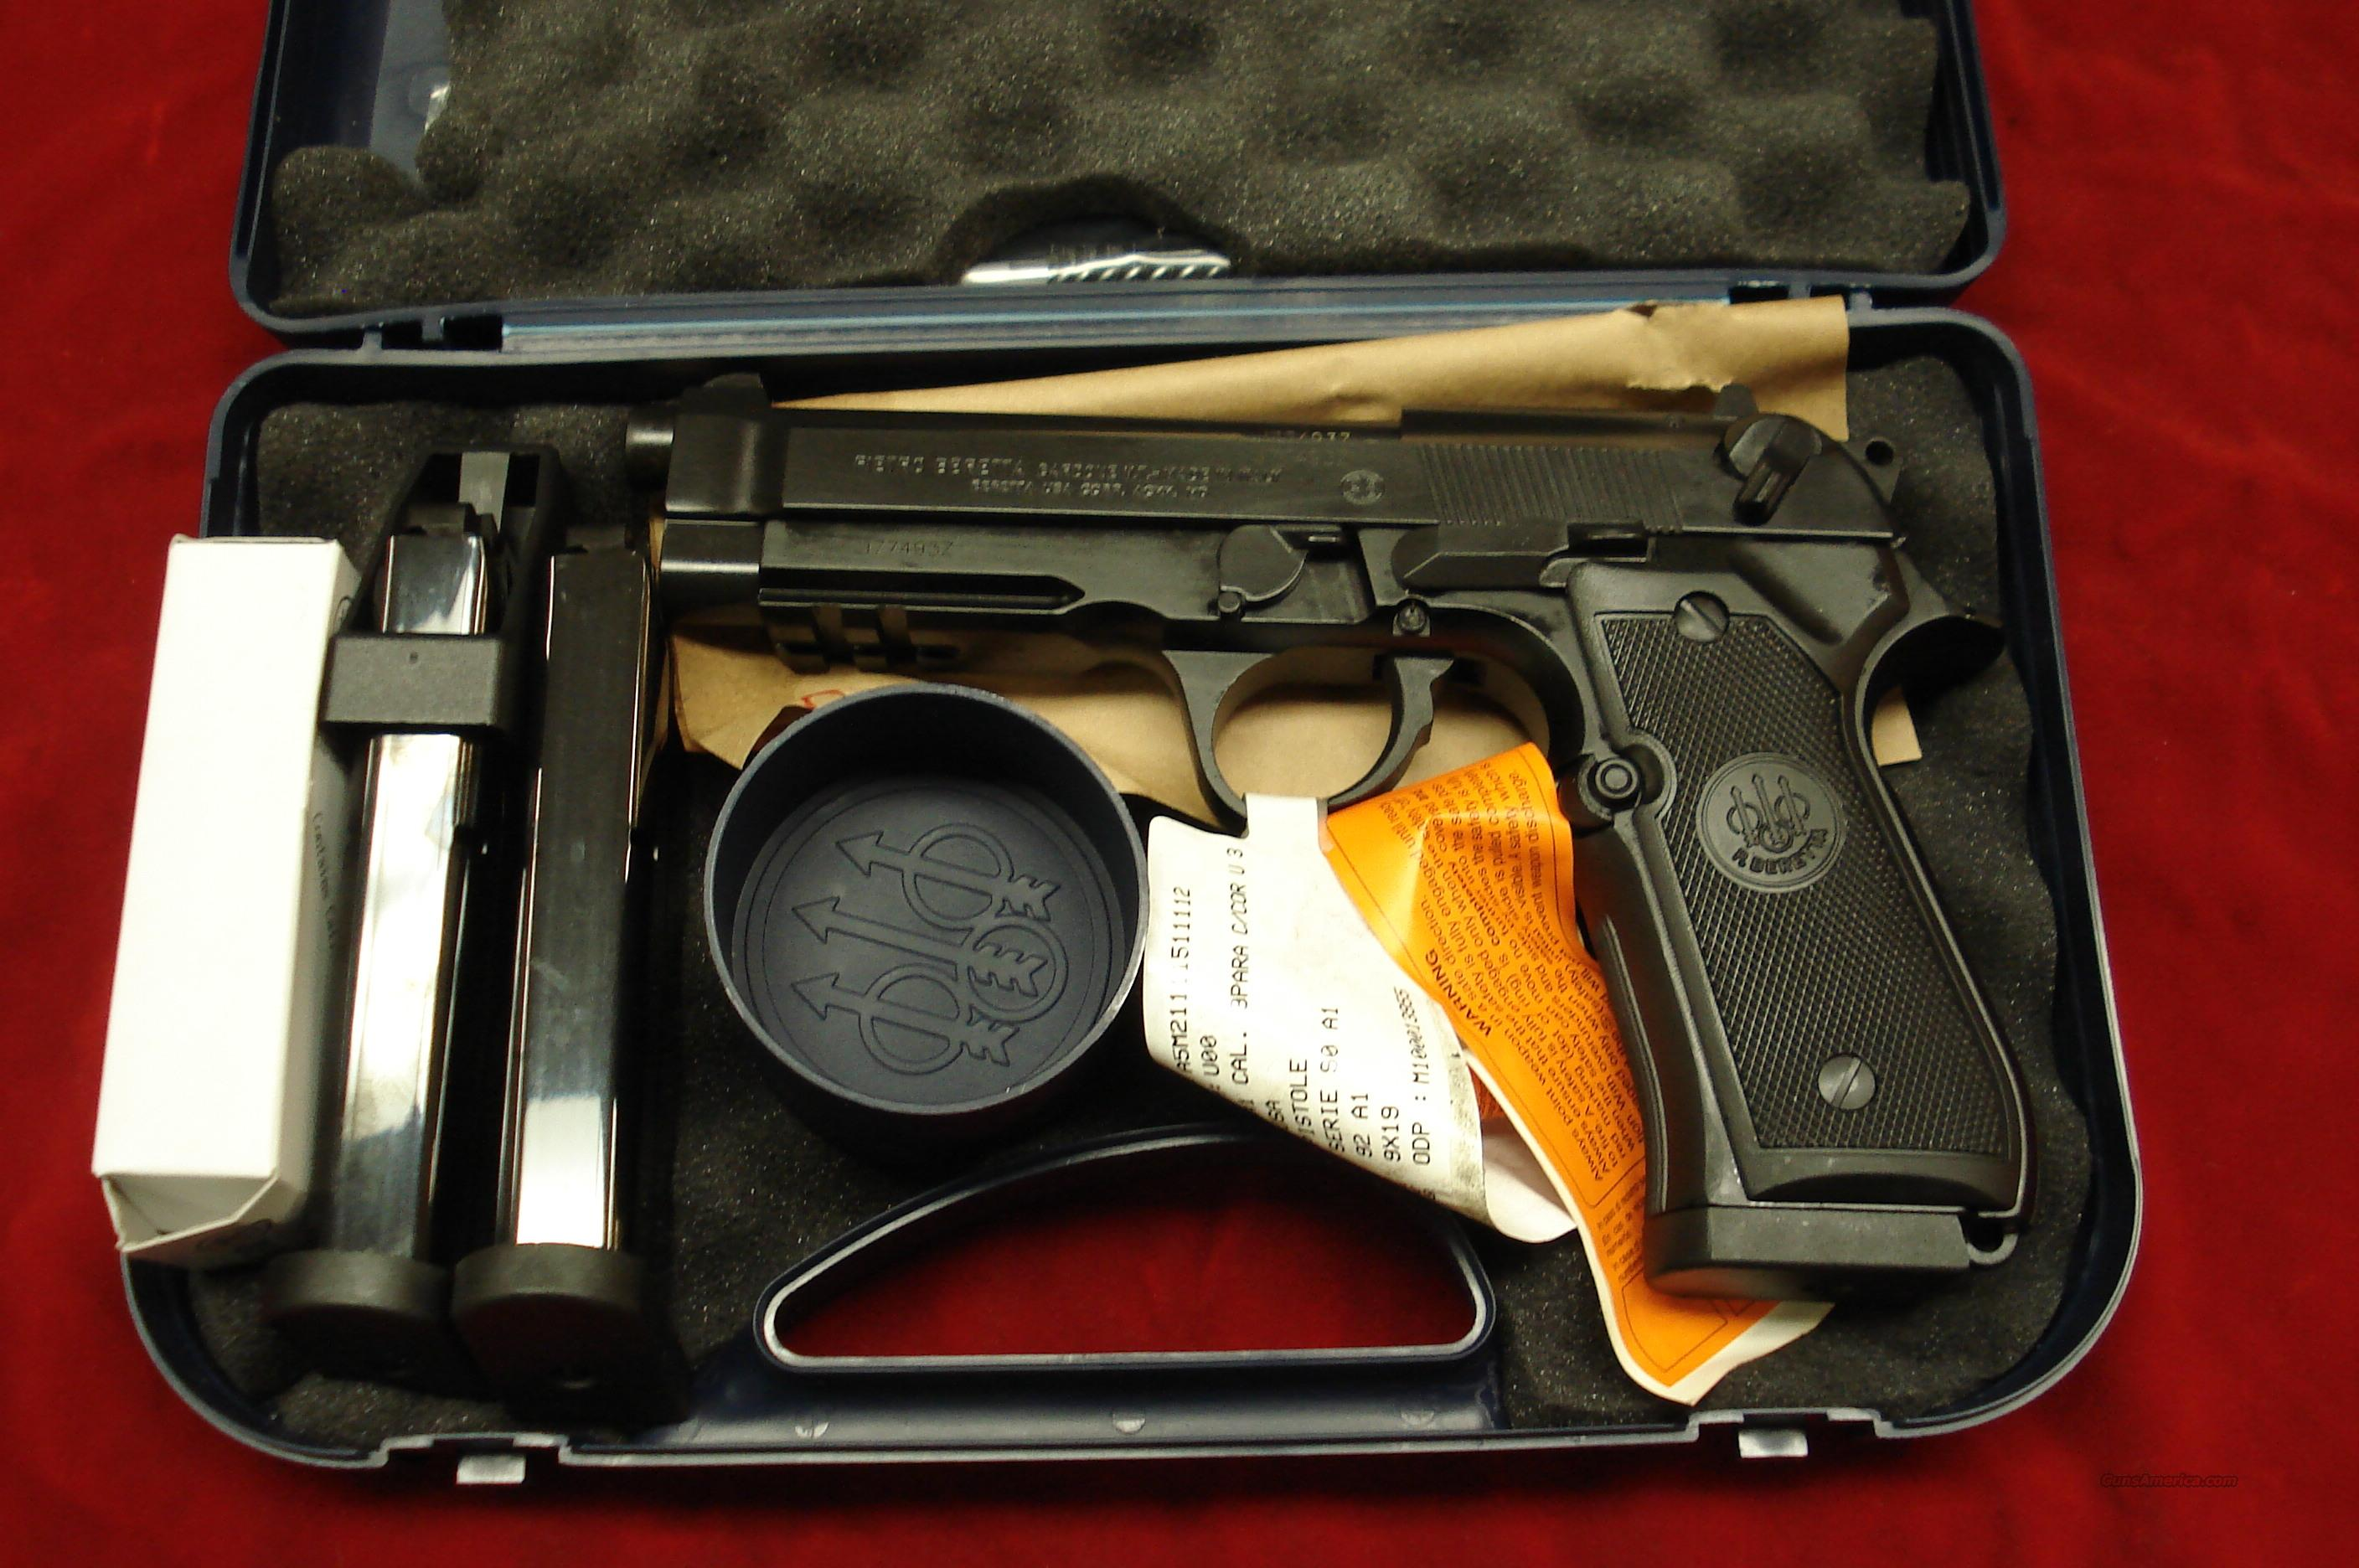 BERETTA 92A1 9MM CAL. NEW  (J9A9F10)  Guns > Pistols > Beretta Pistols > Model 92 Series